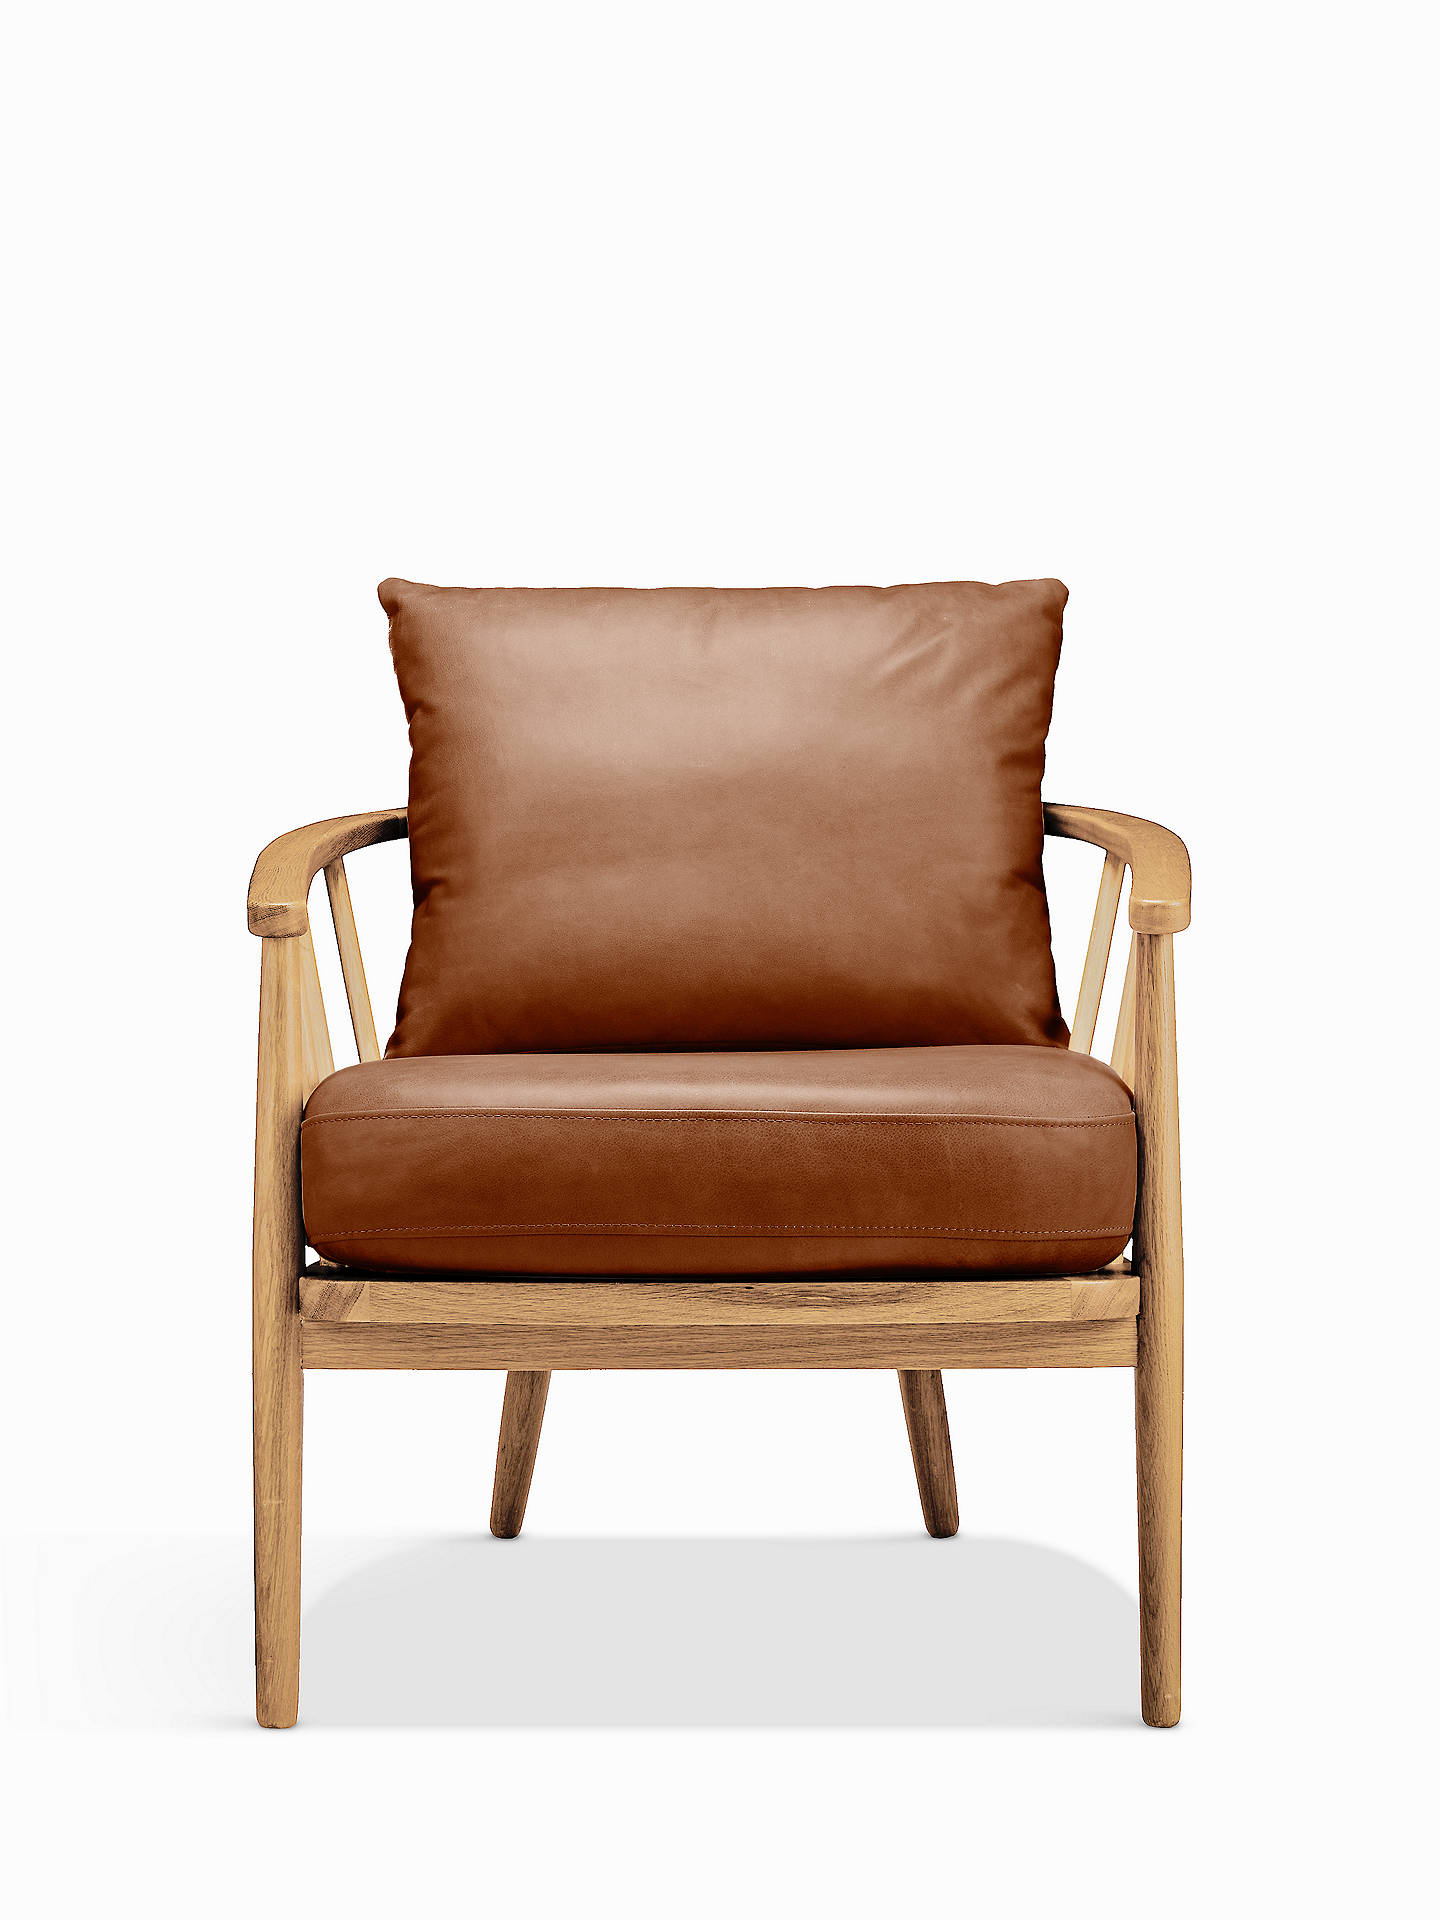 Croft Collection Frome Show Wood Leather Chair Oak Leg Contempo Castanga Online At Johnlewis